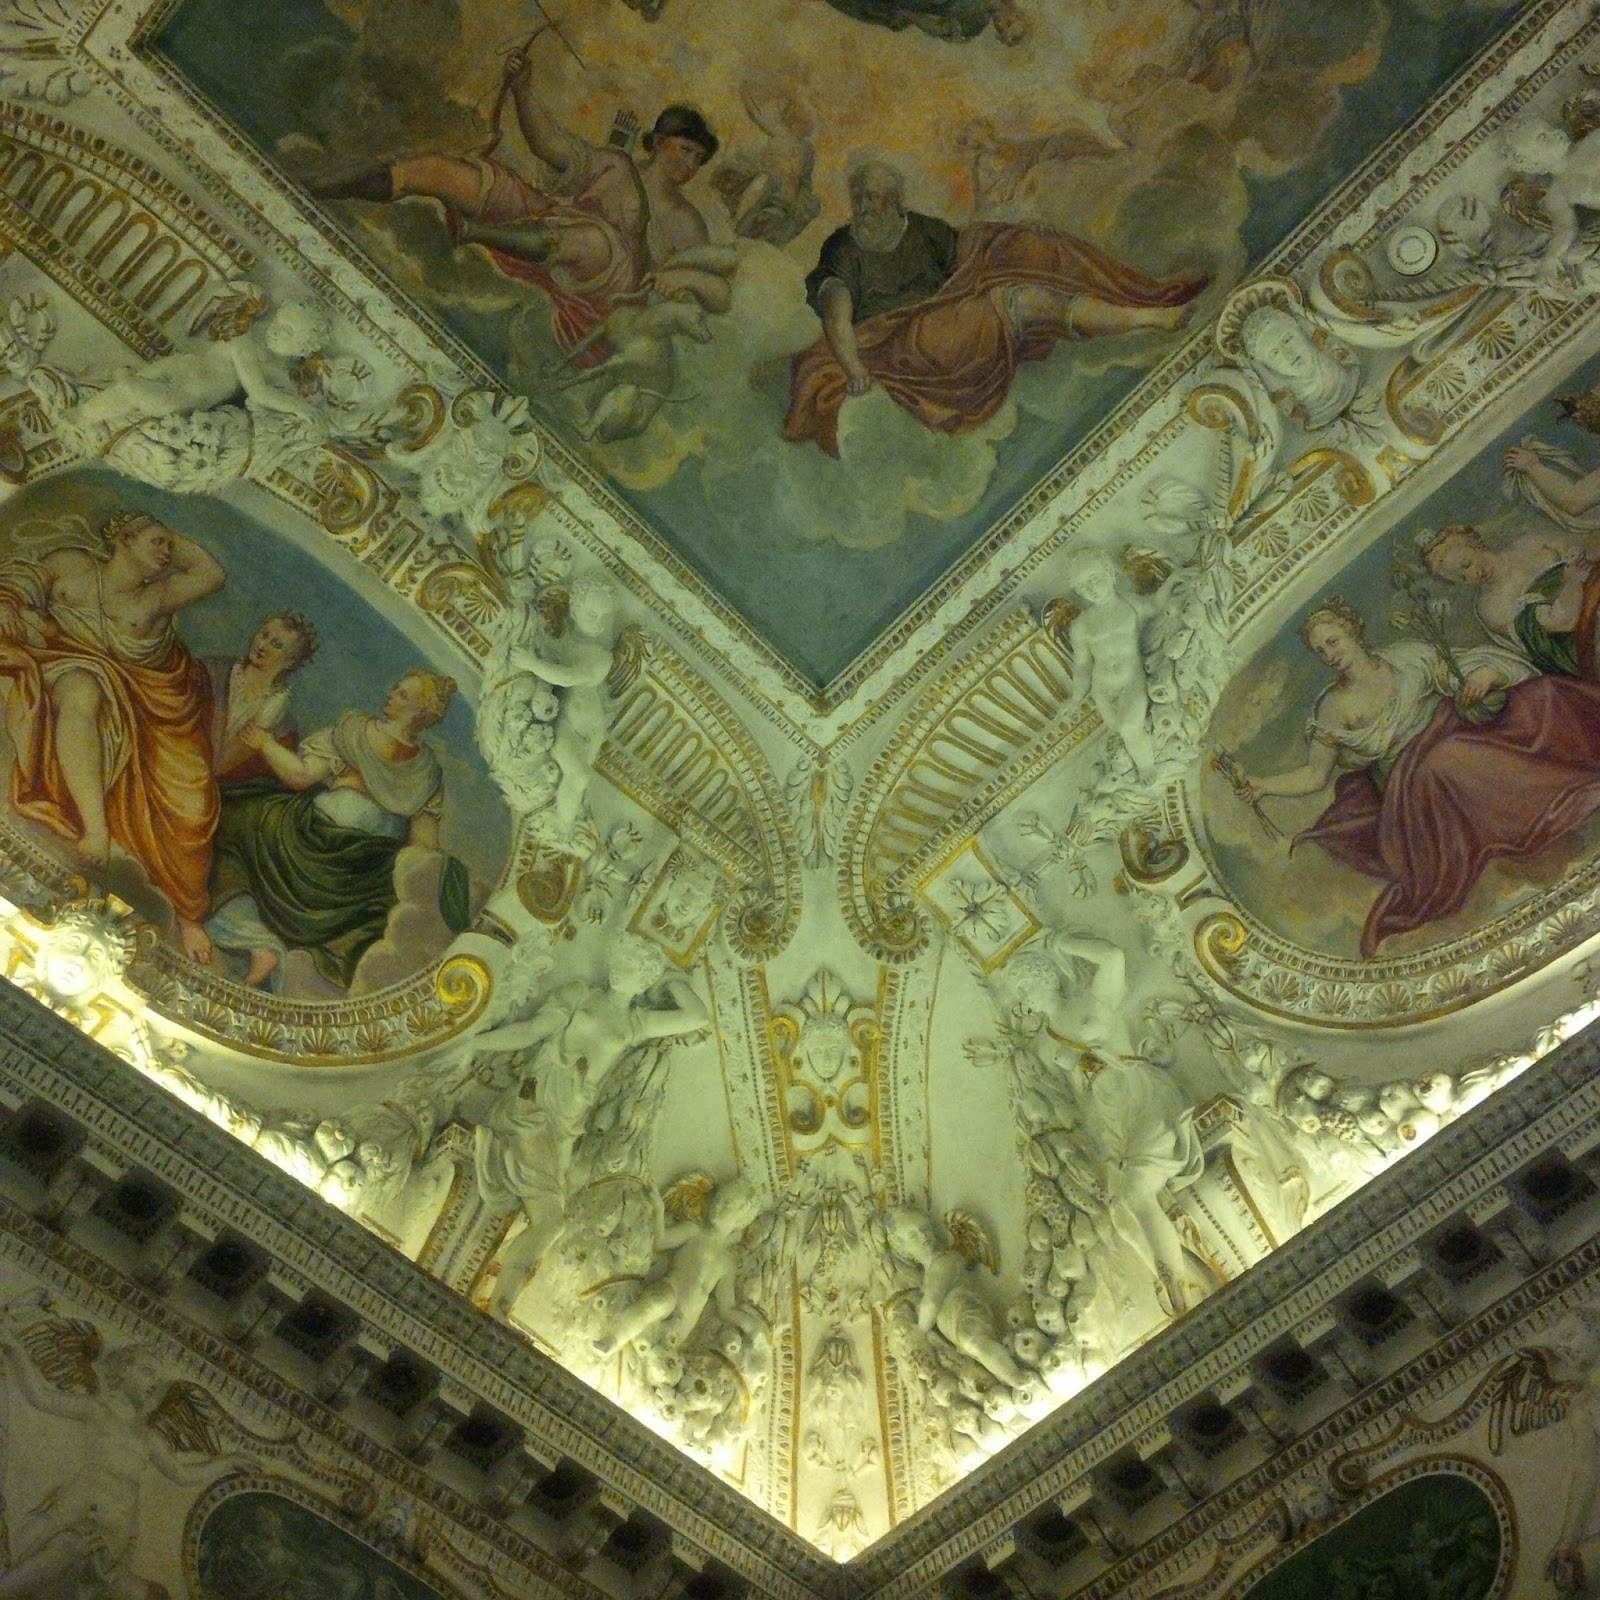 Beautifully painted ceiling in Palladio's Museum in Vicenza